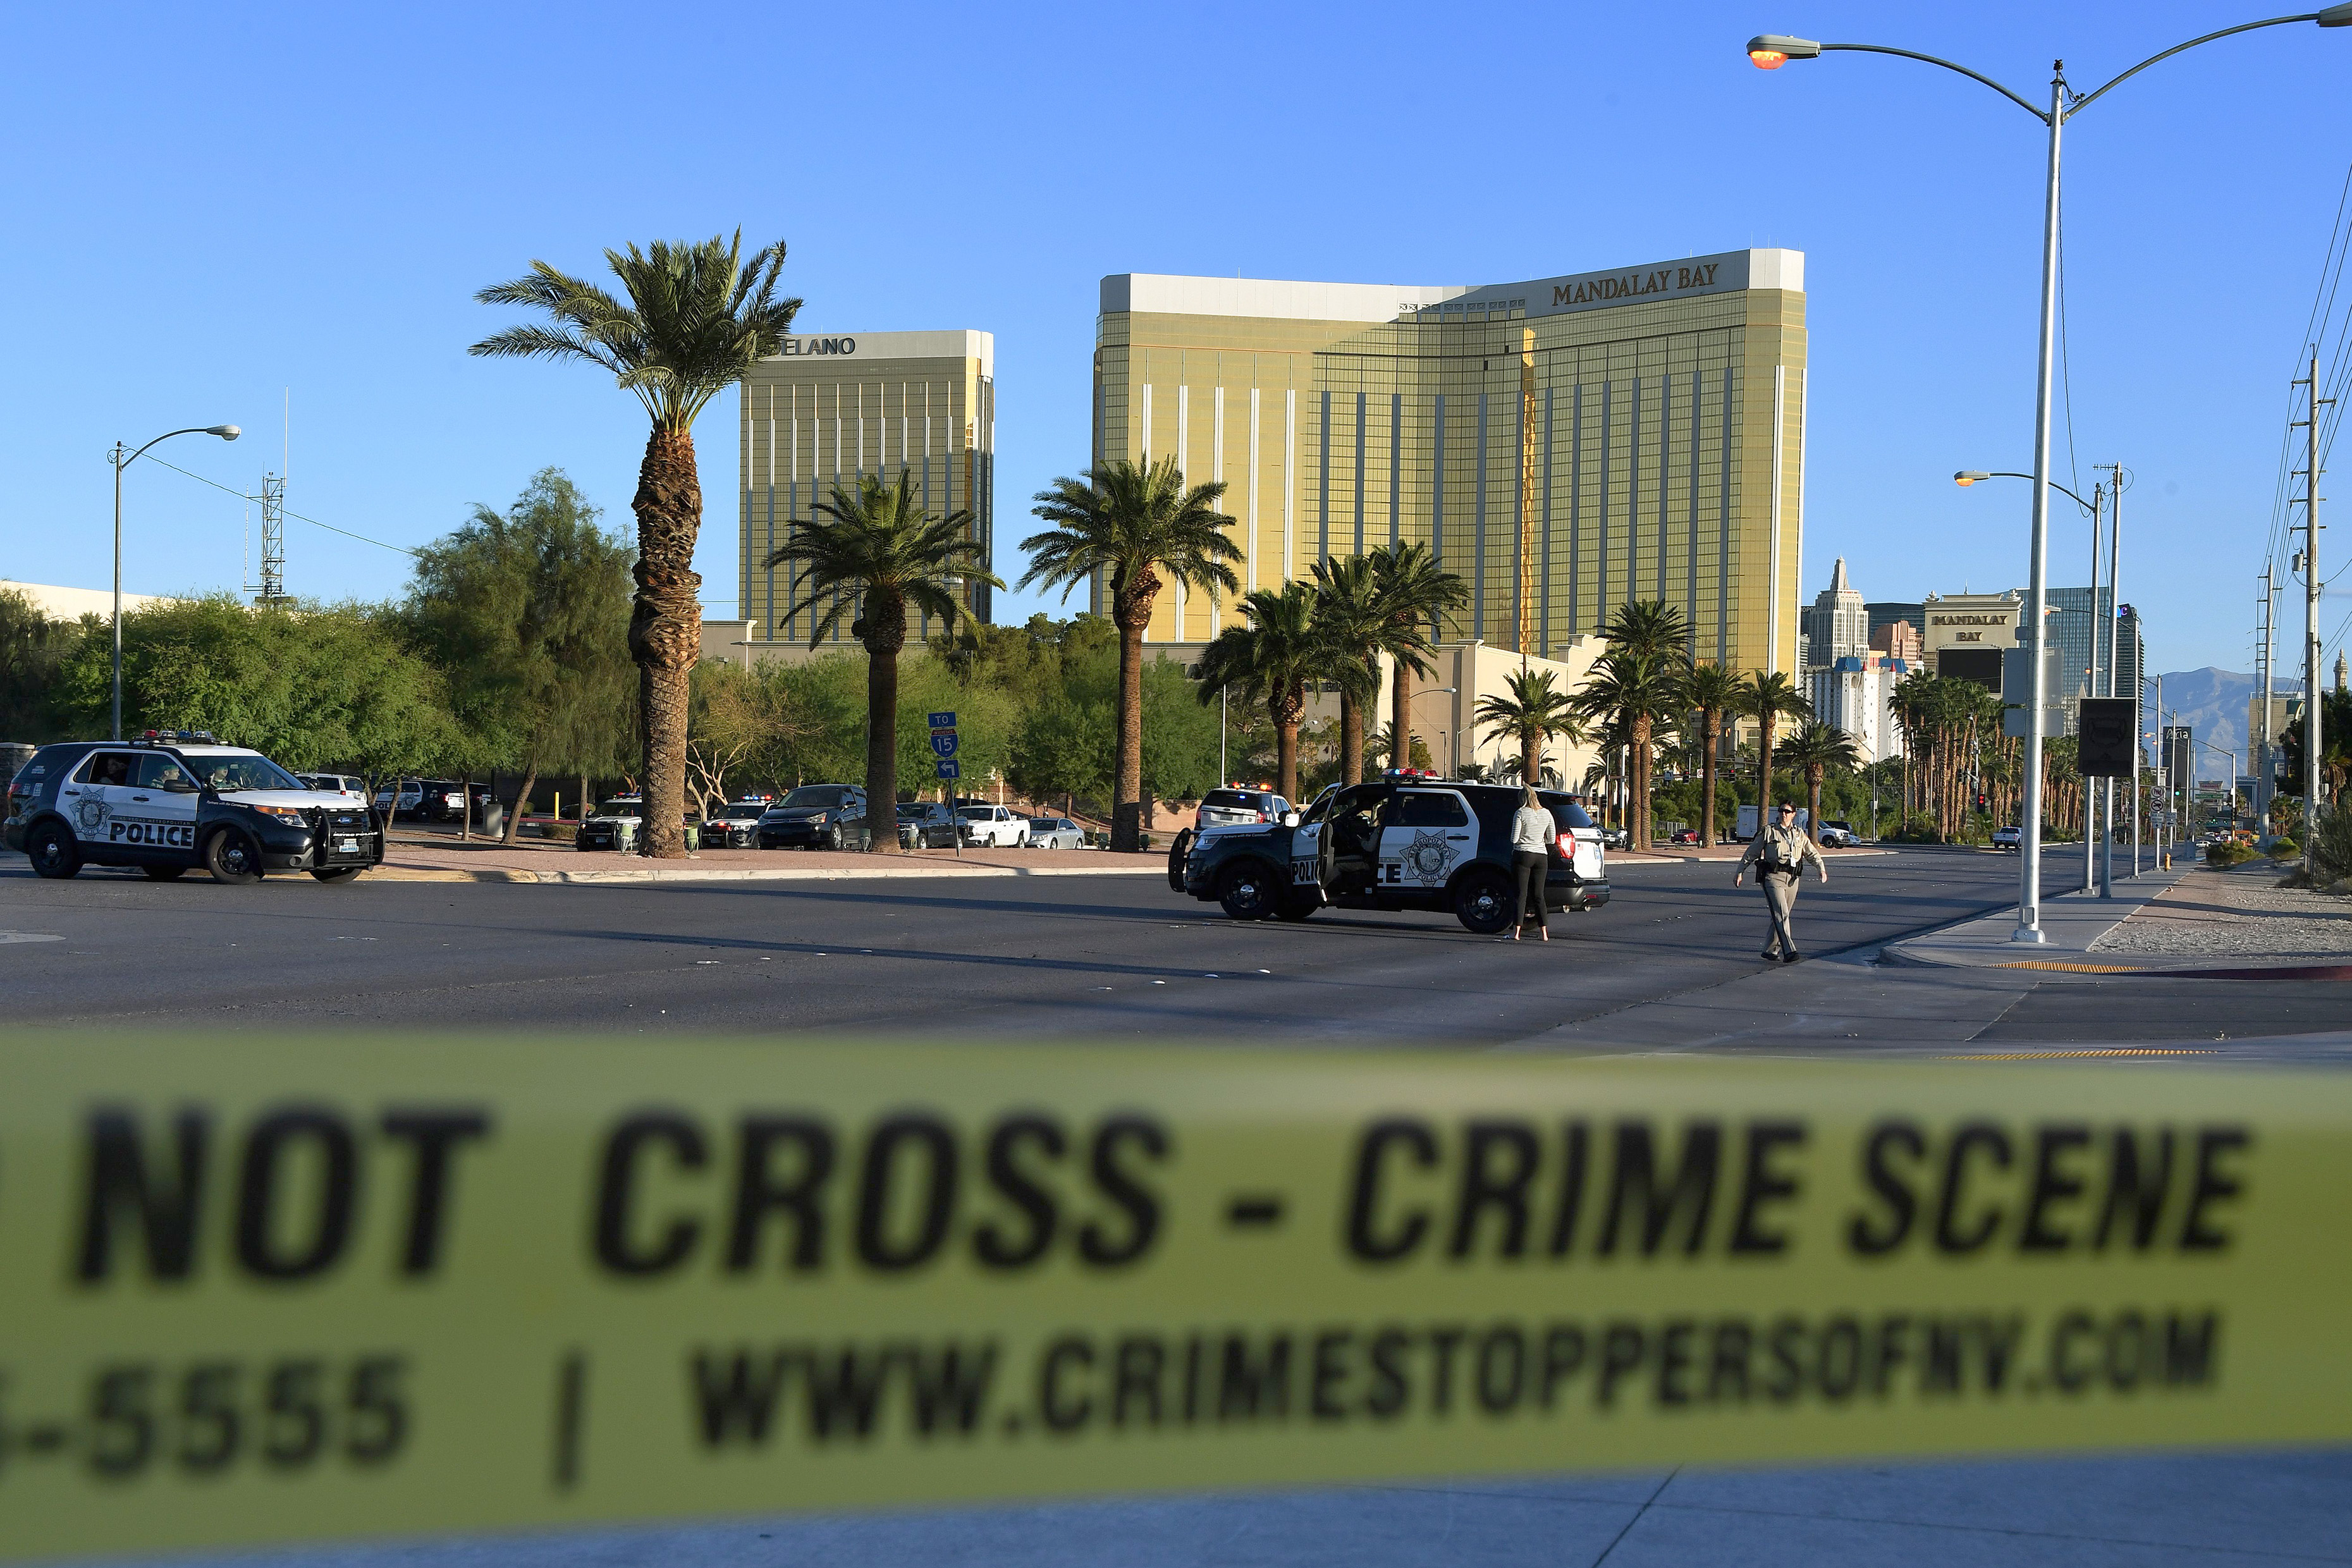 Slide 1 of 26: Crime scene tape surrounds the Mandalay Hotel (background) after a gunman killed at least 50 people and wounded more than 200 others when he opened fire on a country music concert in Las Vegas, Nevada on October 2, 2017.  Police said the gunman, a 64-year-old local resident named as Stephen Paddock, had been killed after a SWAT team responded to reports of multiple gunfire from the 32nd floor of the Mandalay Bay, a hotel-casino next to the concert venue.